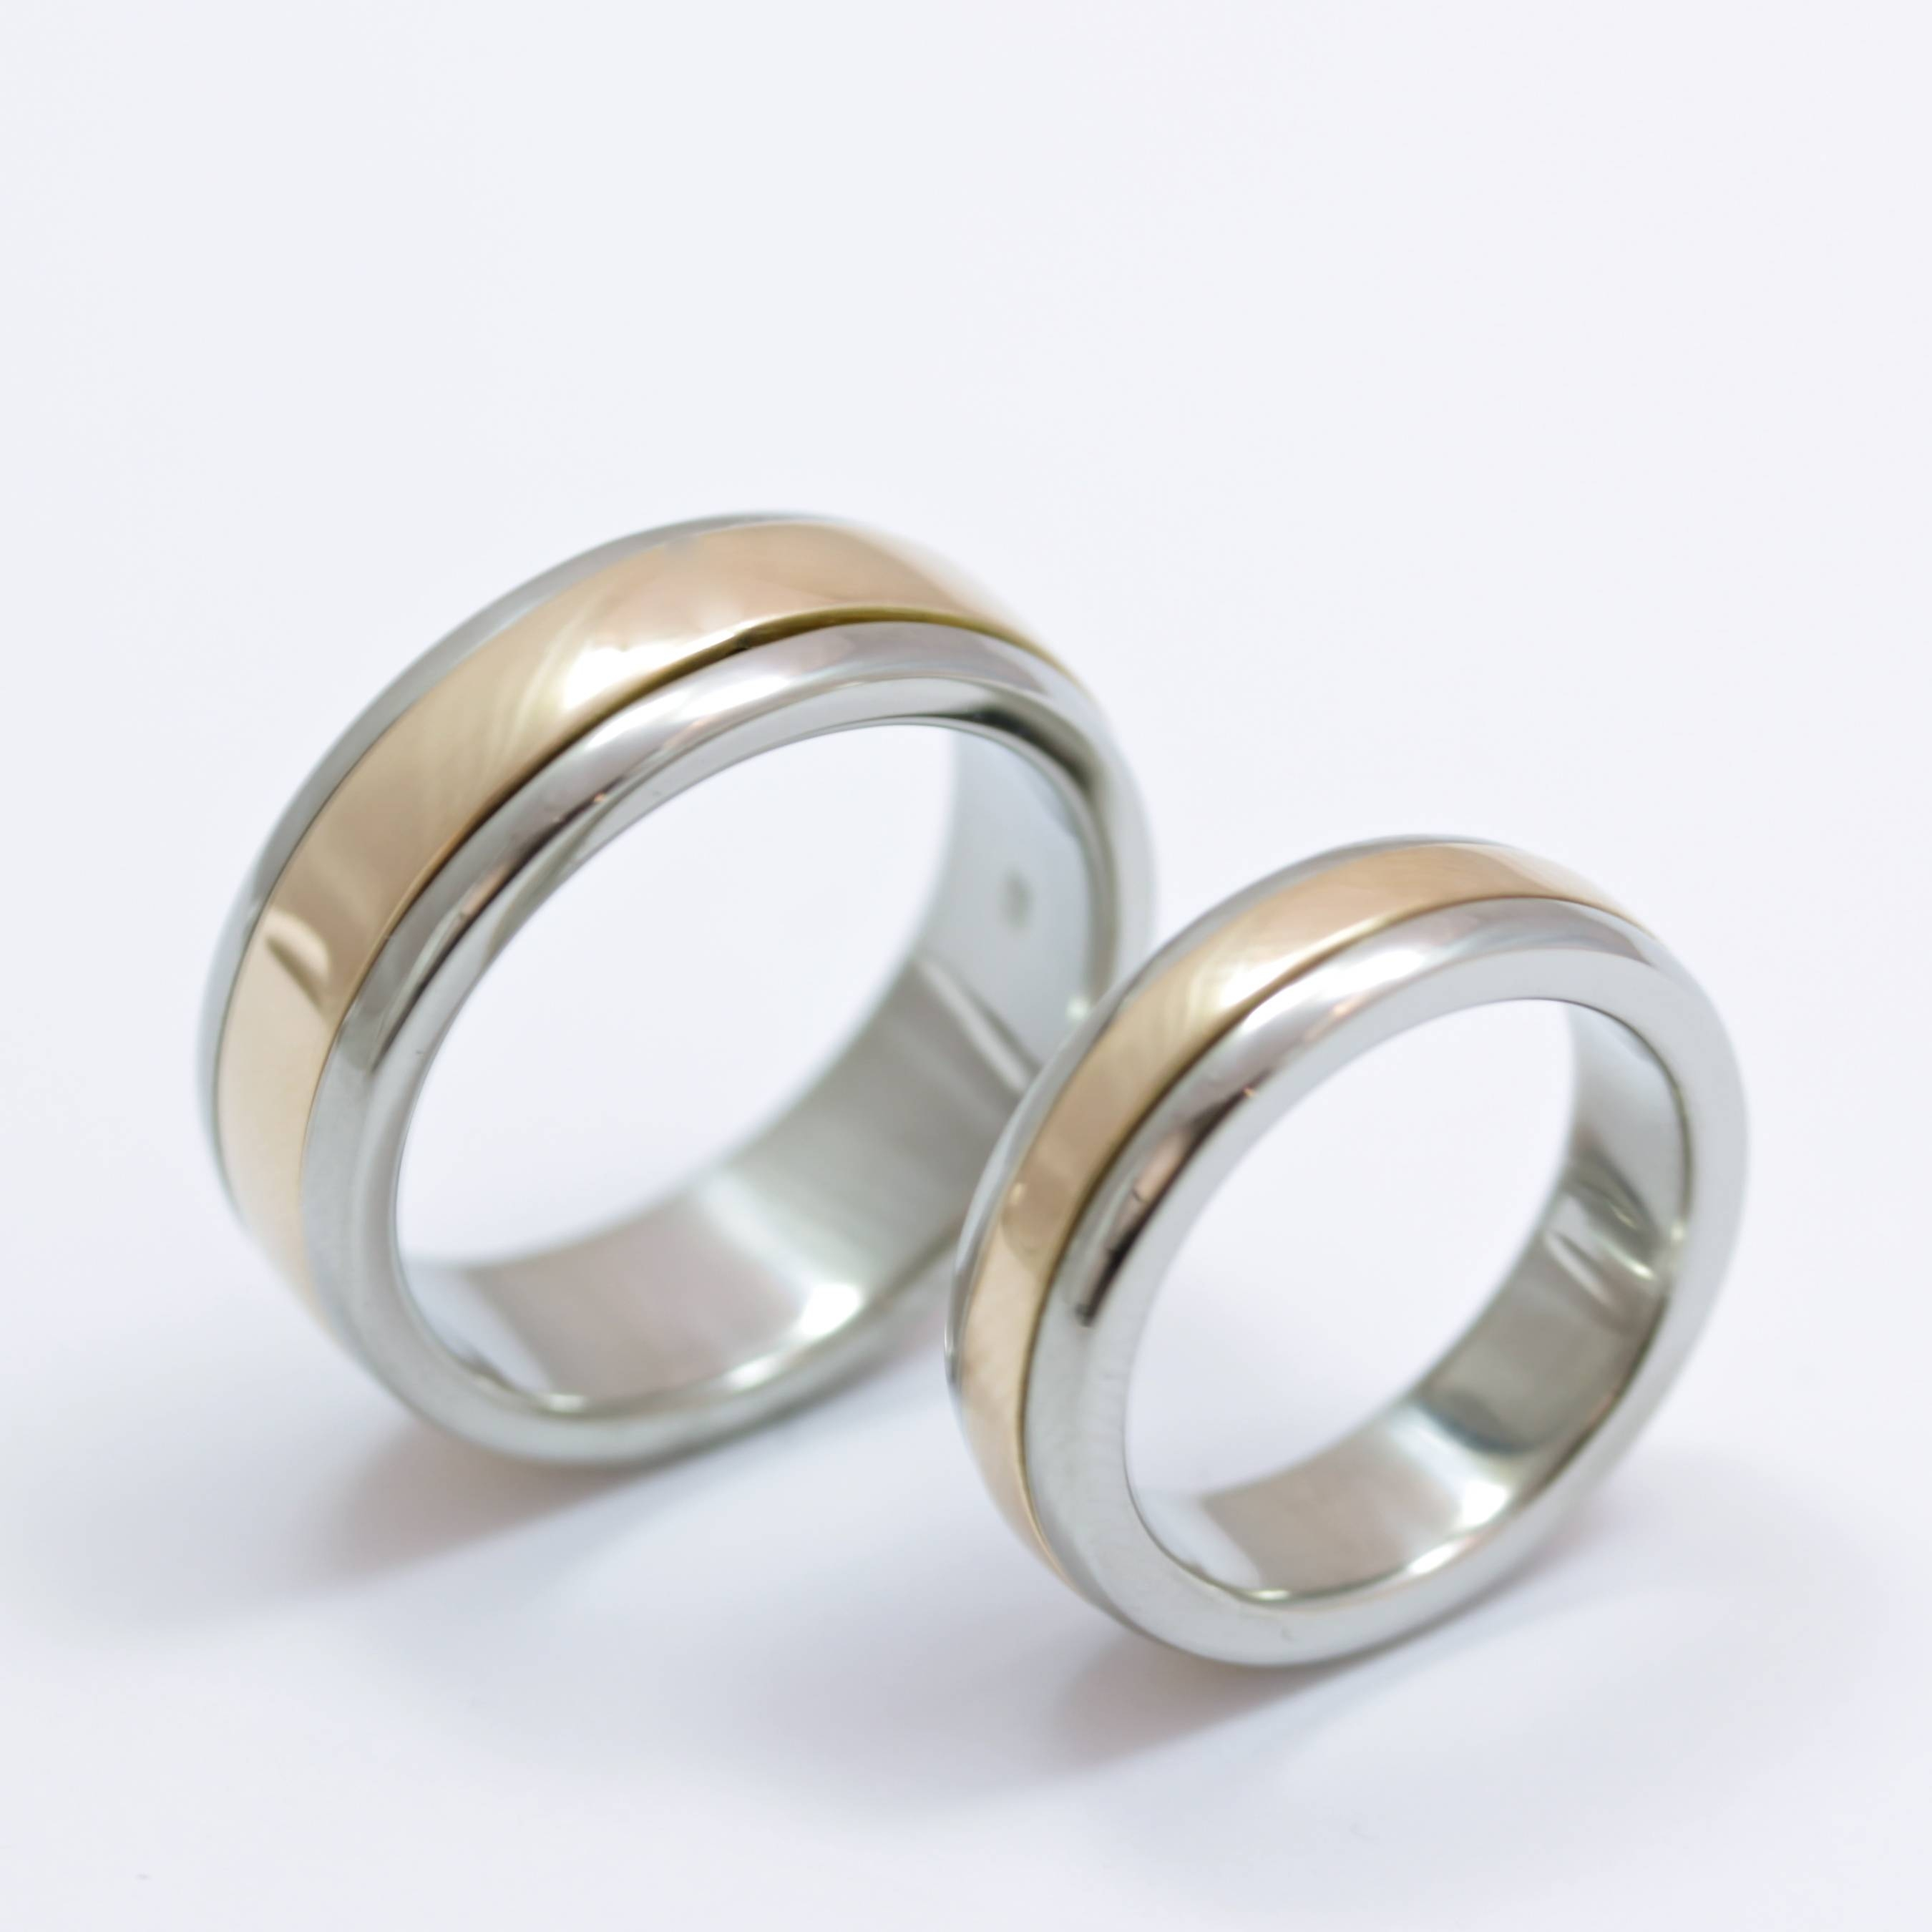 Wedding Rings : Palladium Vs Platinum Hardness Palladium Rings Inside Most Recent Palladium Wedding Bands For Women (View 10 of 15)